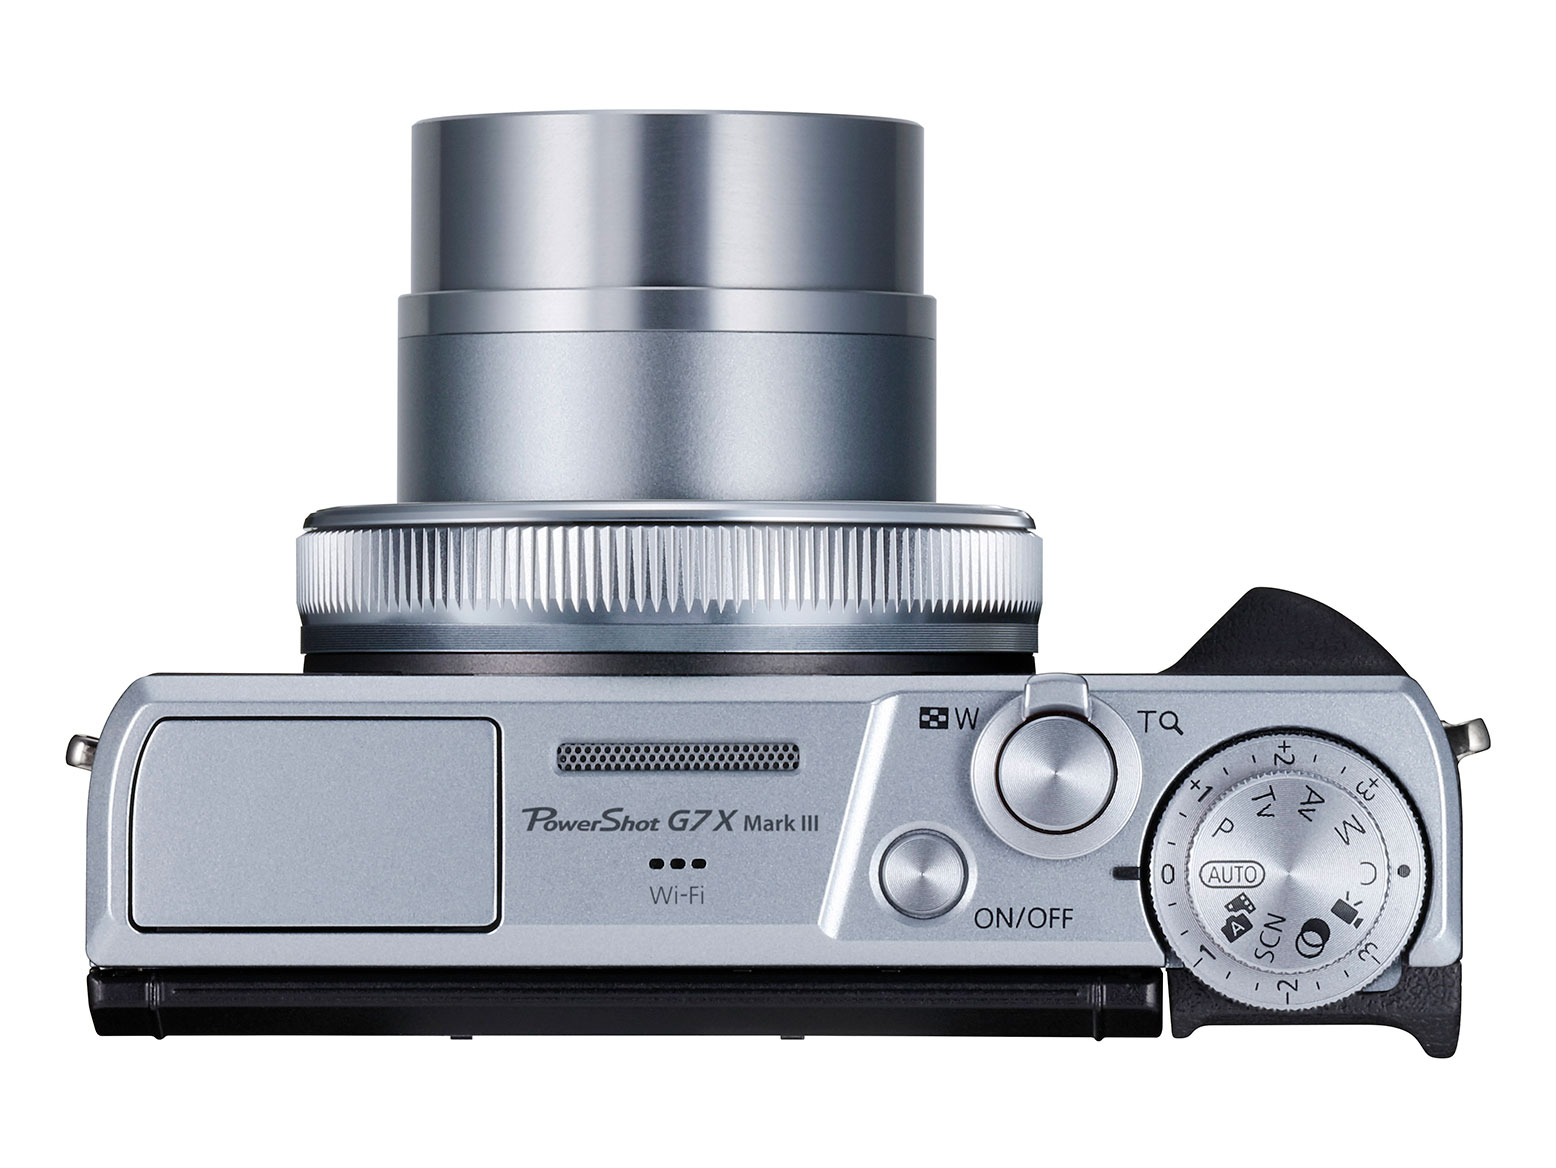 Canon officially announces the PowerShot G5 X Mark II and PowerShot